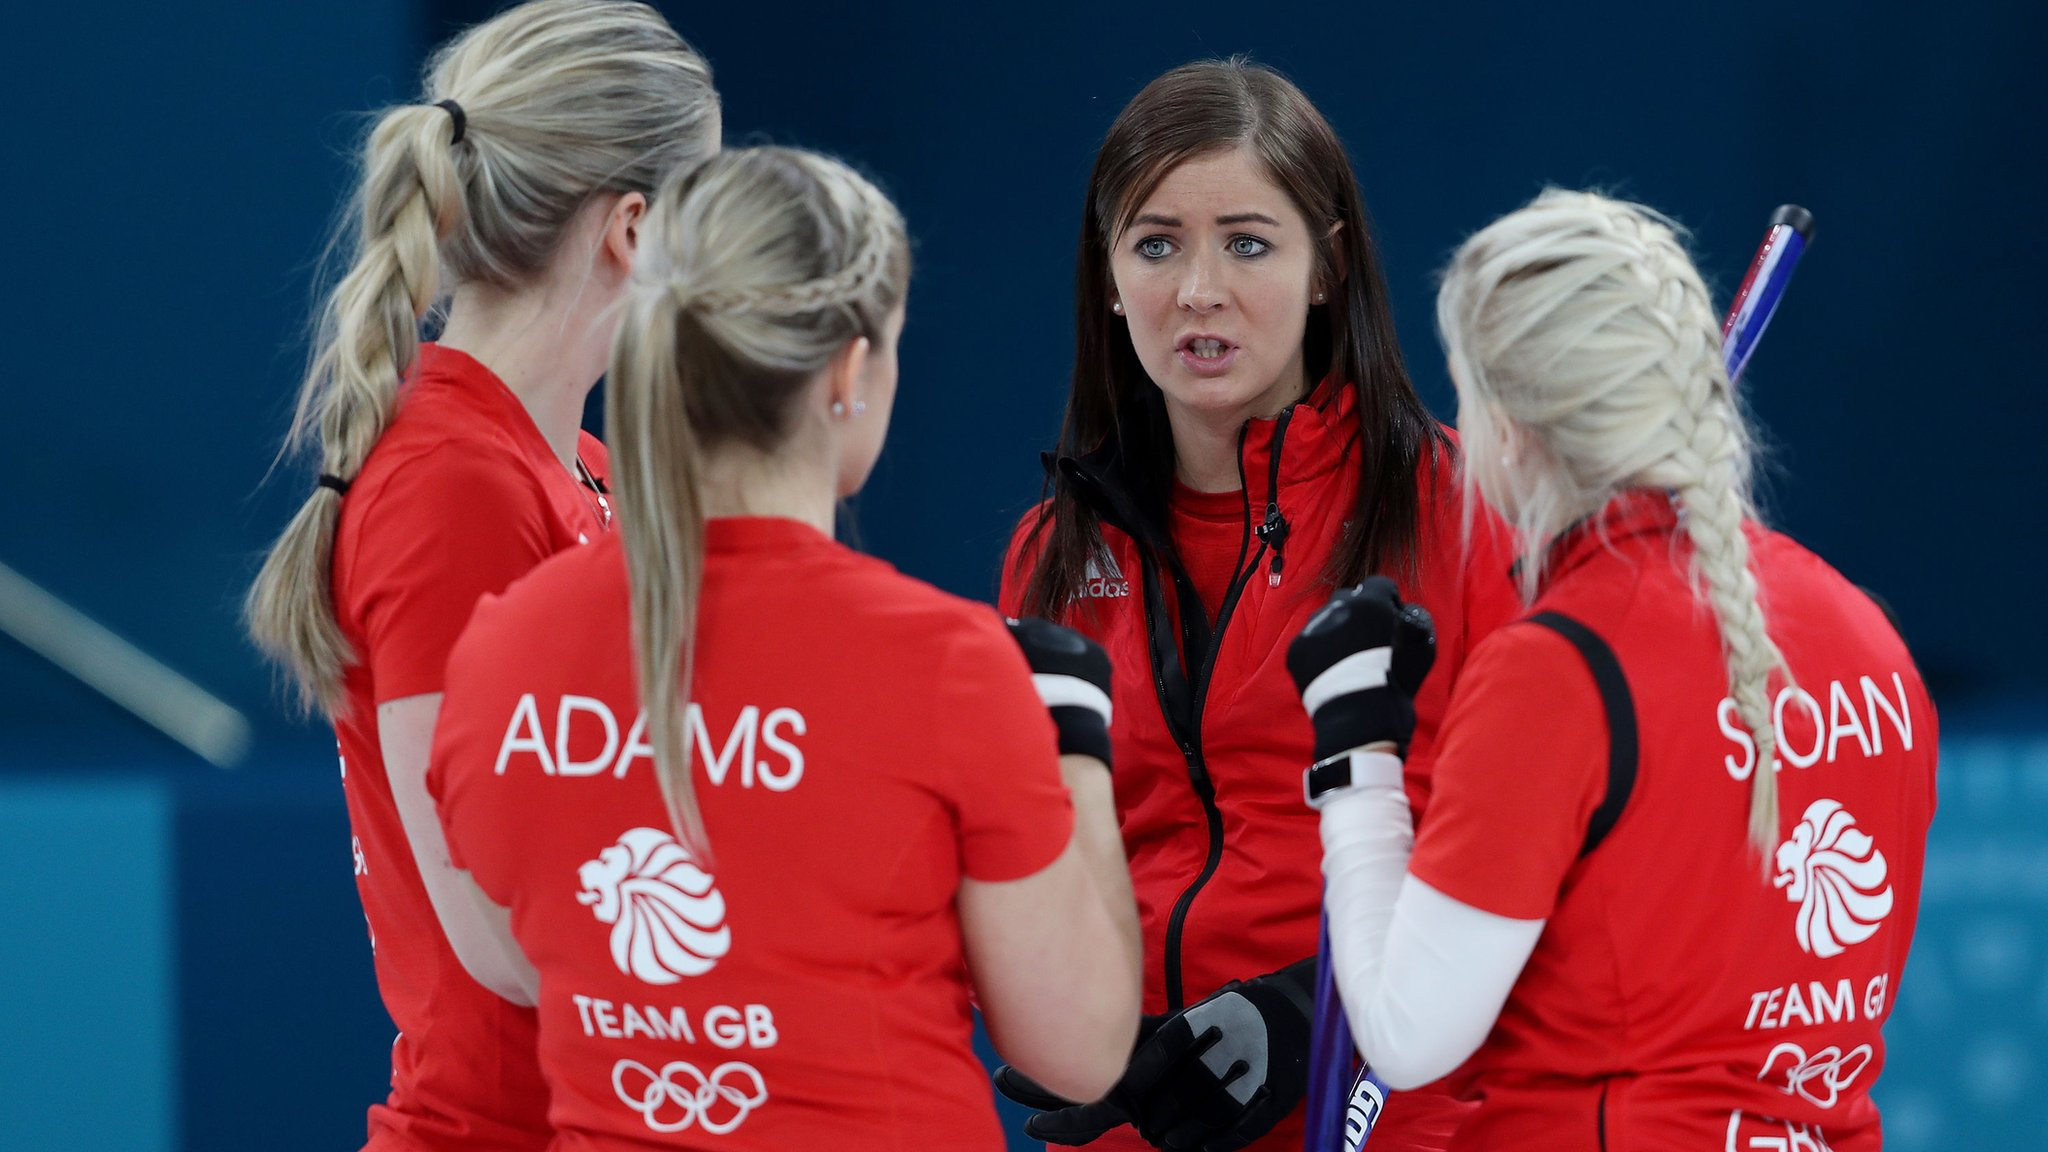 Winter Olympics: GB curling teams record big wins to move closer to semi-finals